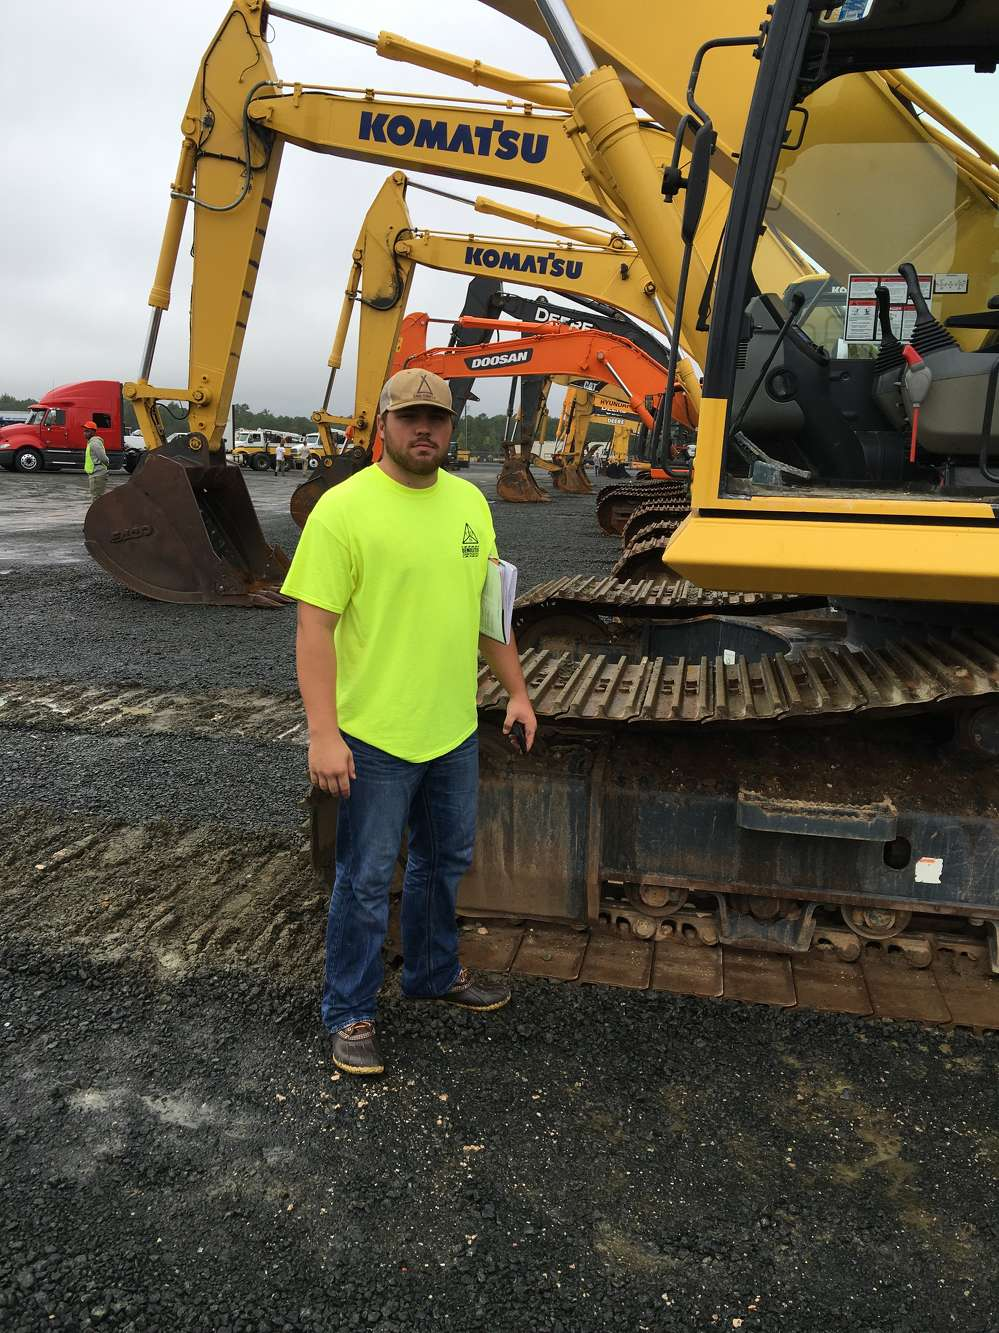 Blake Morehead of Complete Demolition Services in Carlton, Ga., looks over the Komatsu excavators.